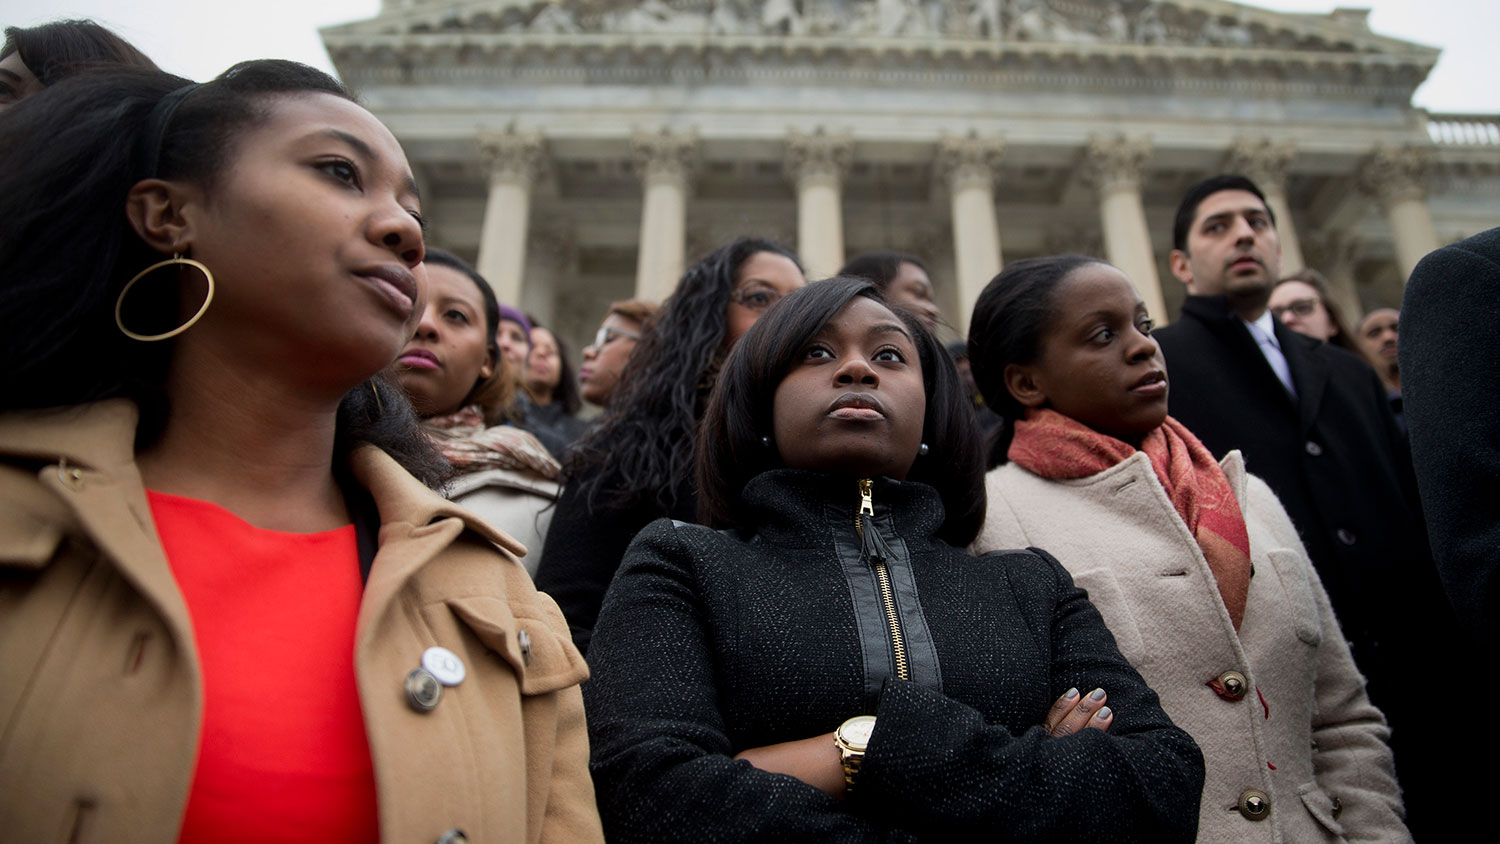 Congressional staff members stand on the U.S. Capitol steps during a protest in Washington on Dec. 11, 2014.